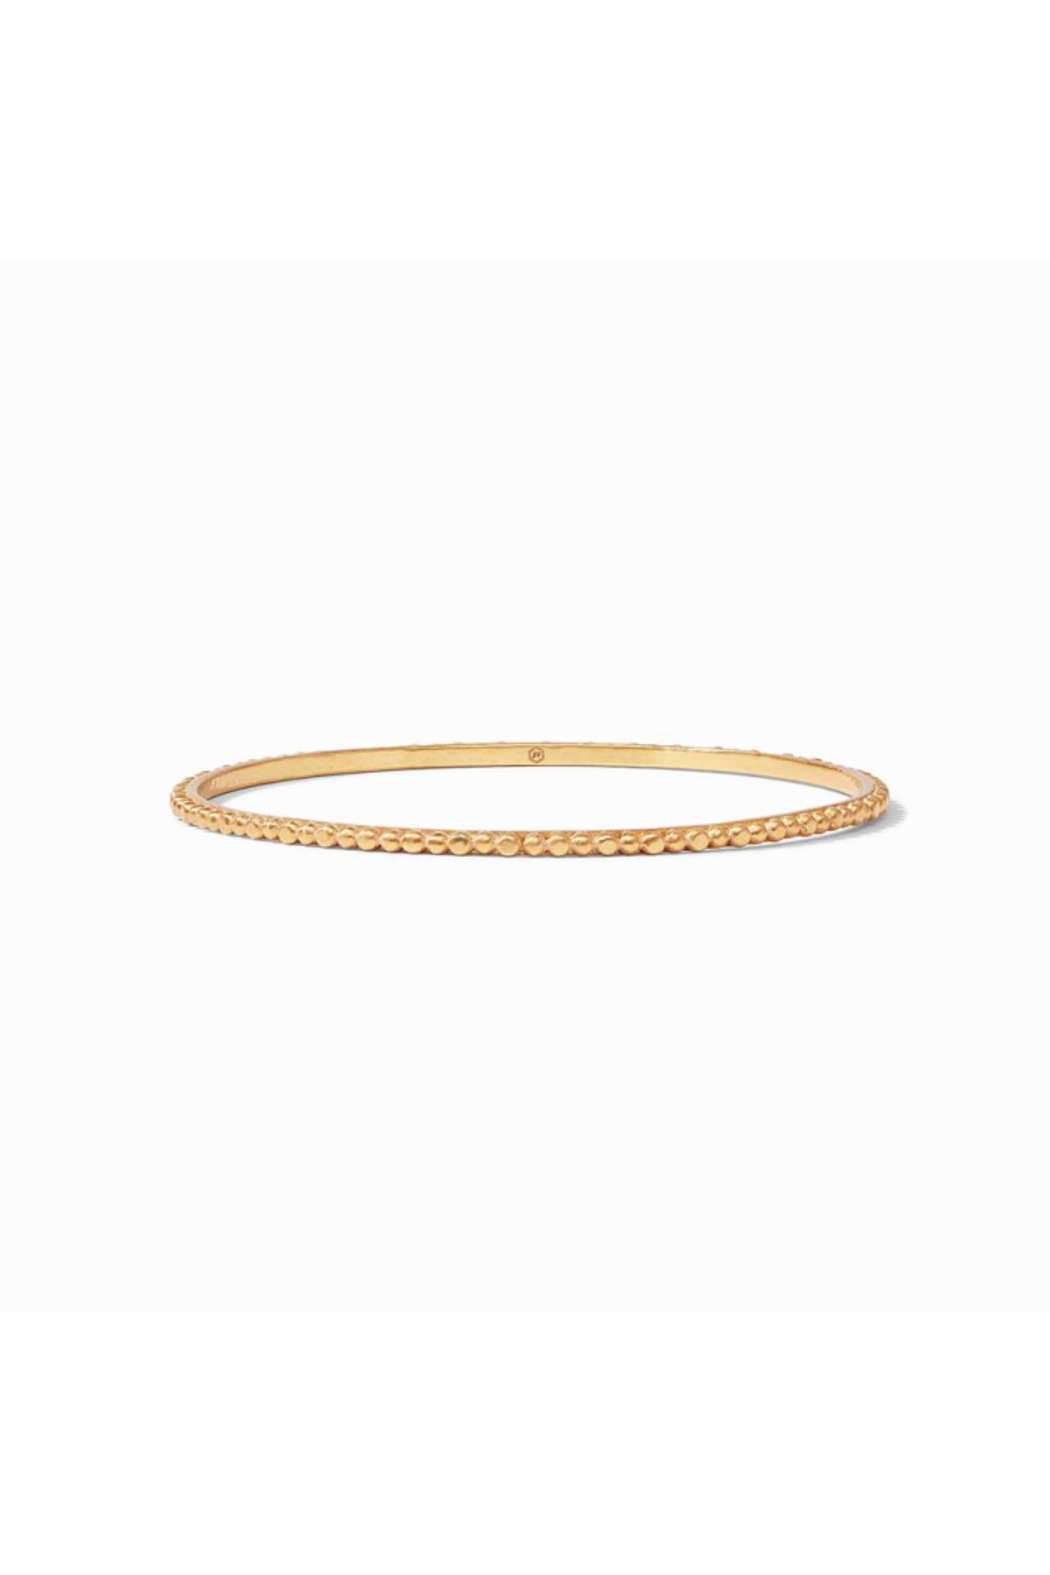 Julie Vos Colette Bead Bangle Gold Medium - Main Image